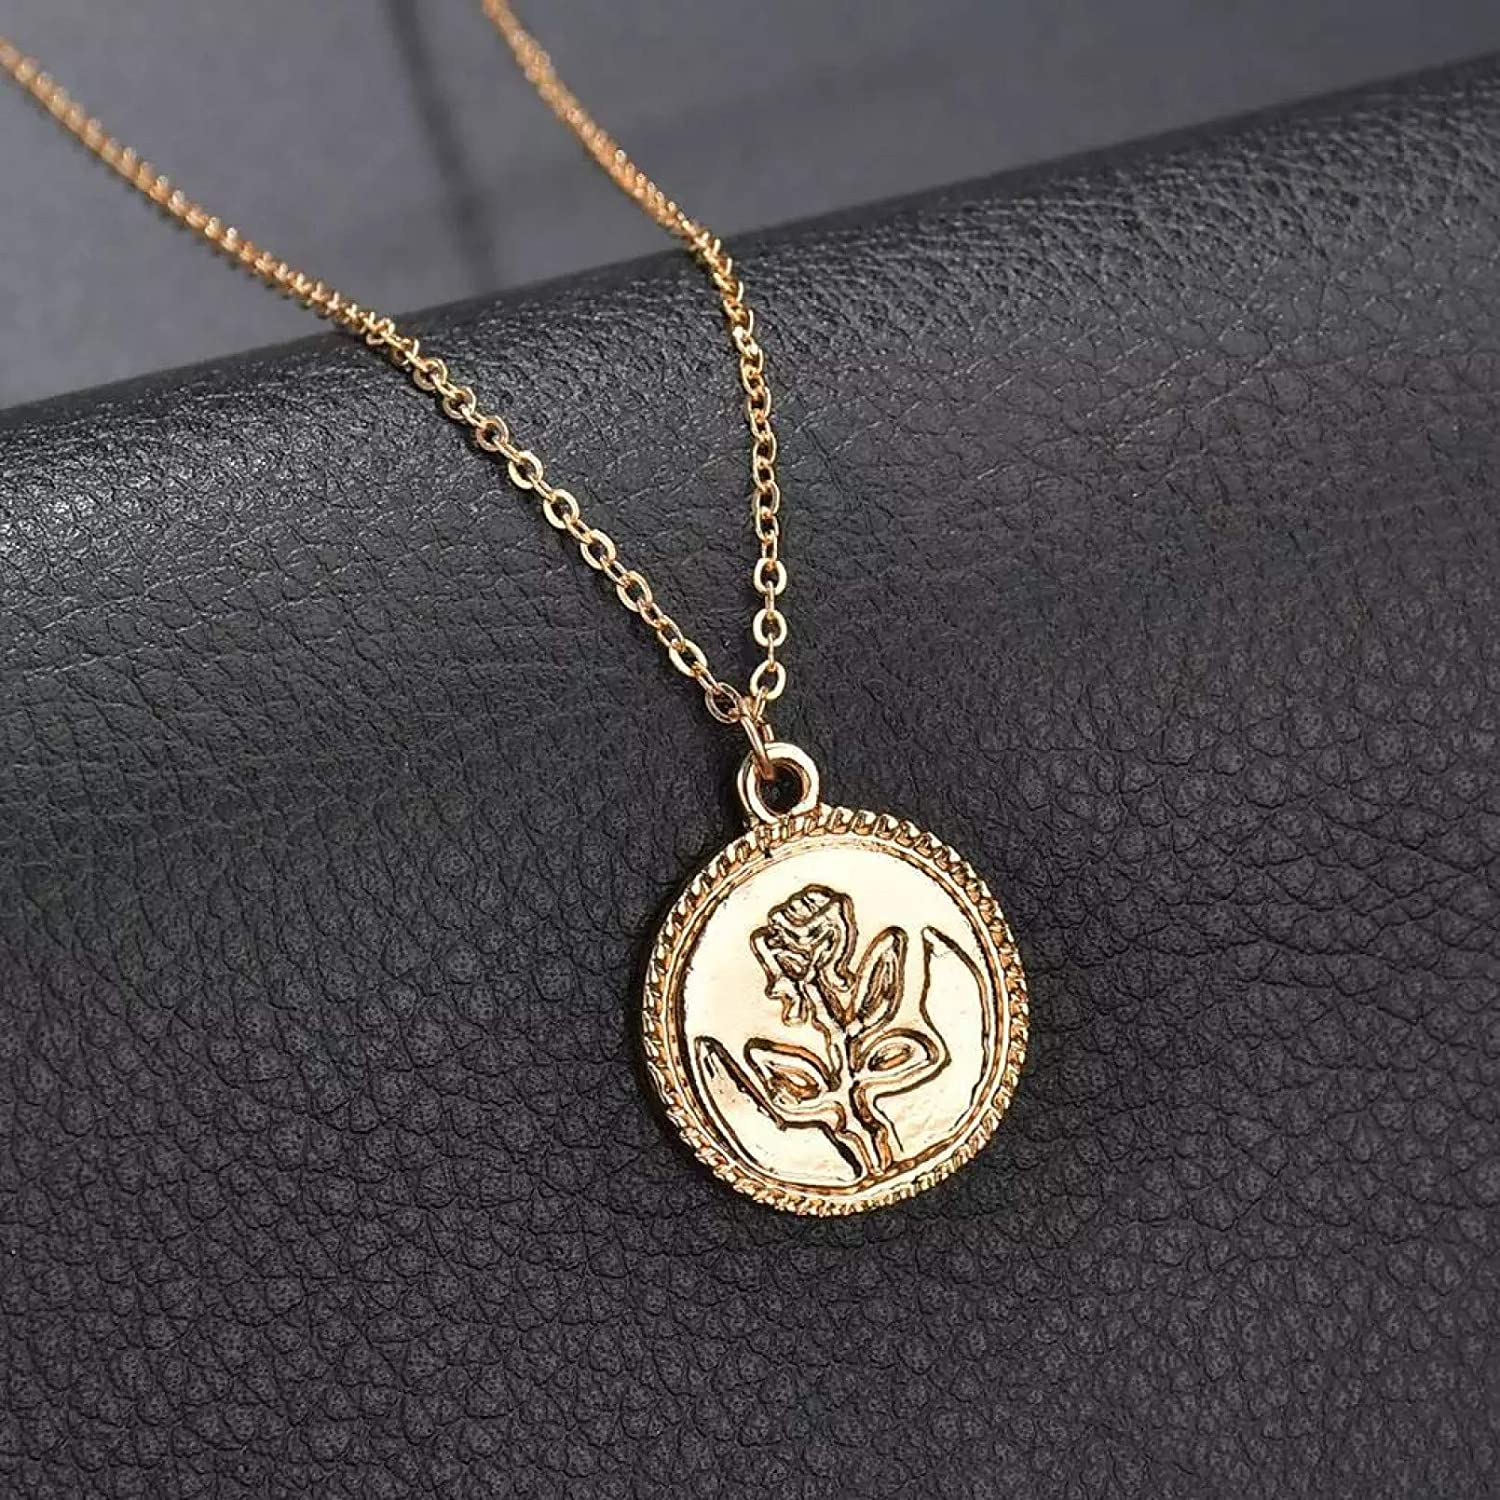 N/A Necklace Pendant Fashion Gold Color Rose Sequined Pendant Necklace for Women Garden Flower Charm Choker Collares Necklace Jewelry Women Halloween Christmas Birthday Party Gift